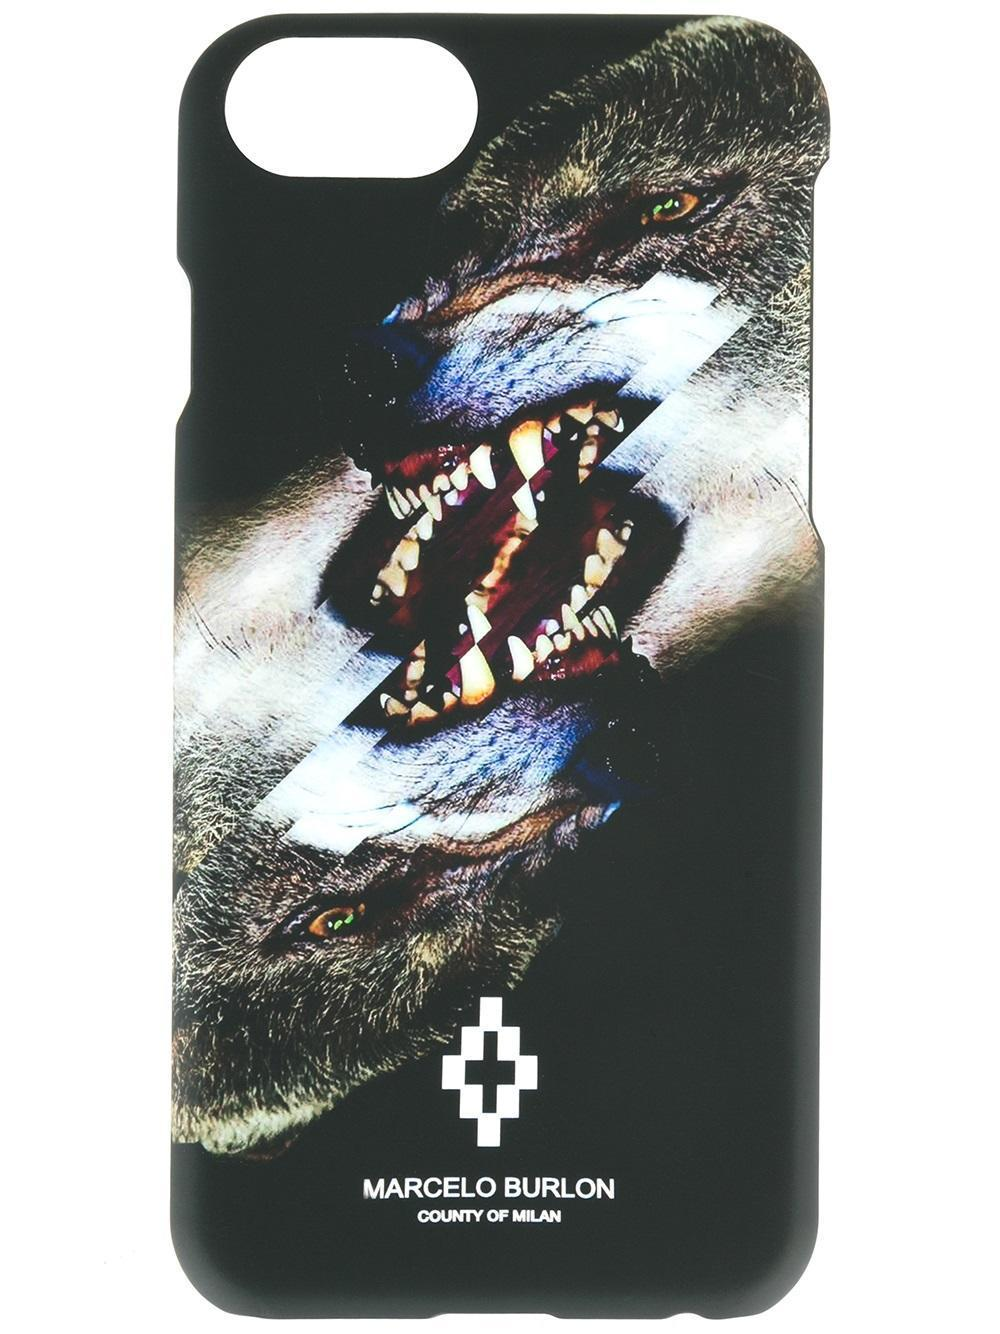 【関税送料込】Marcelo Burlon Tobias iPhone 7 カバー